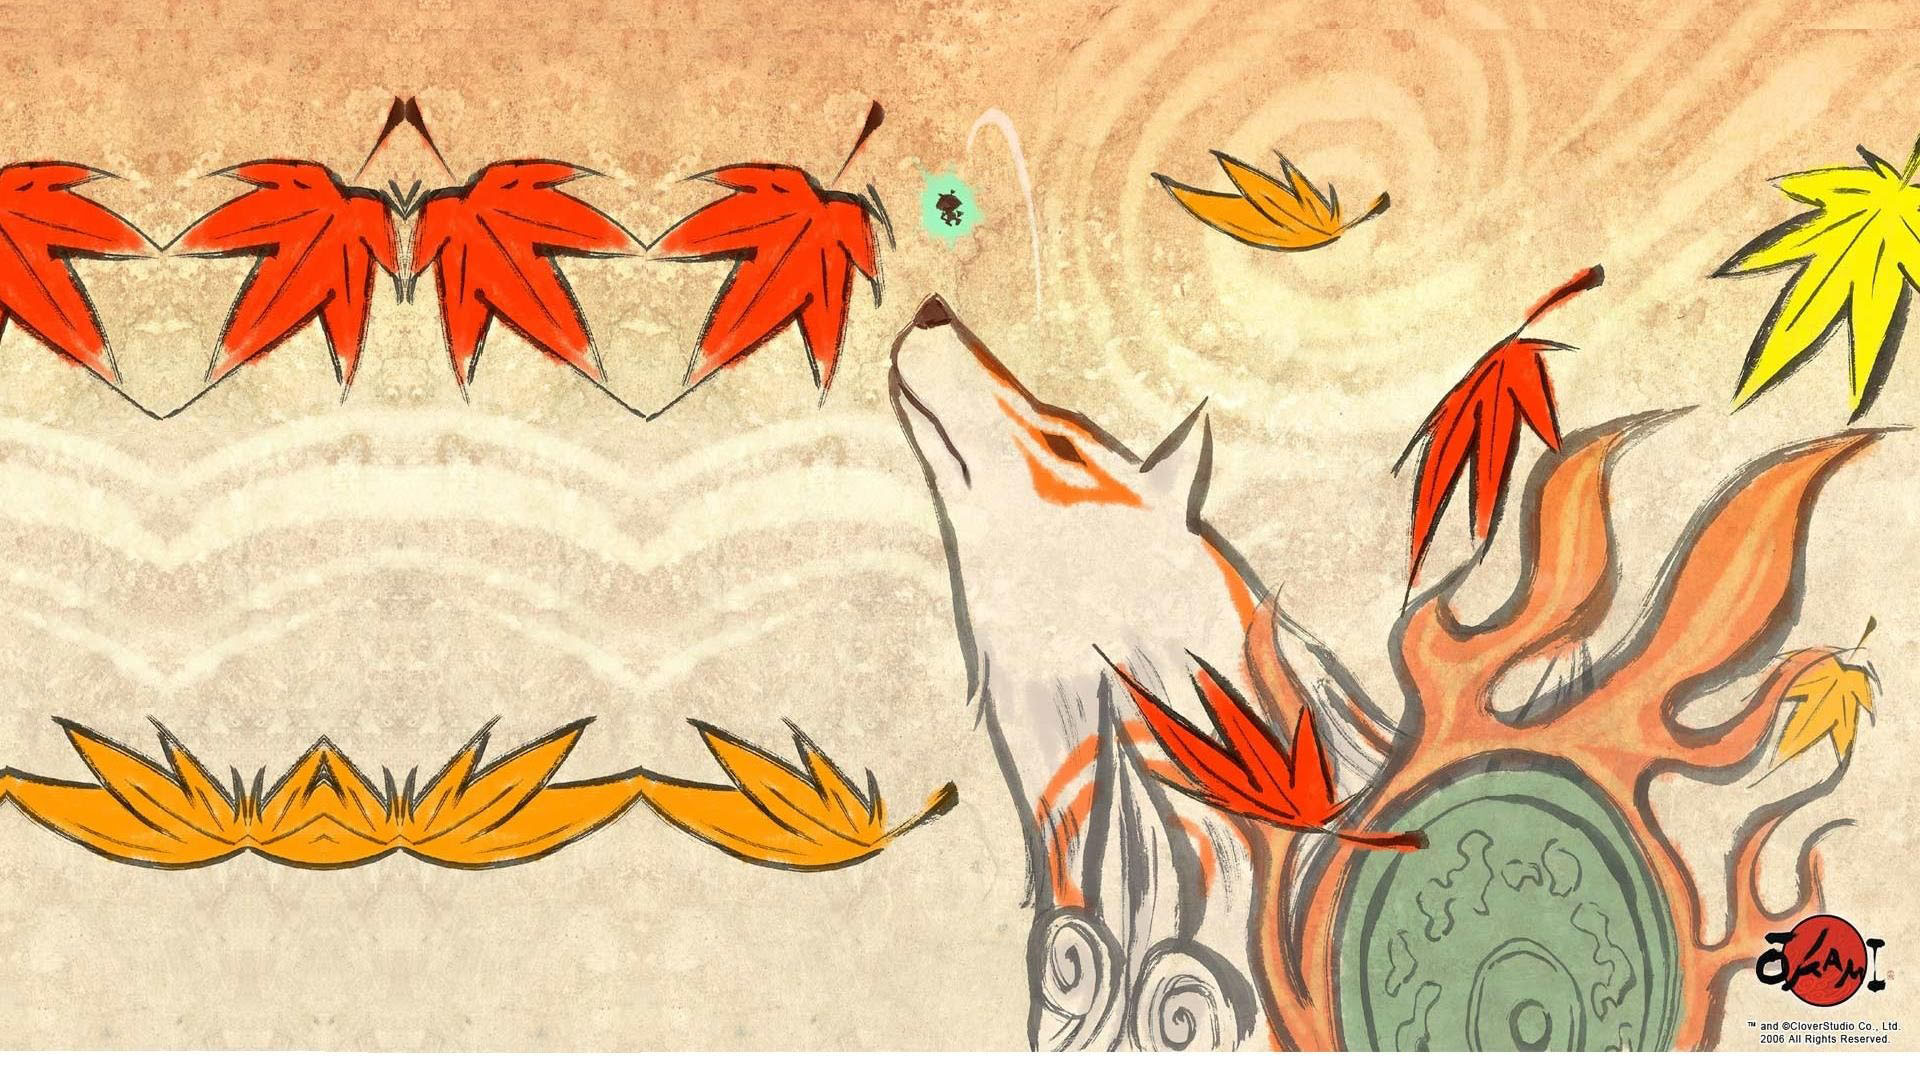 Previous Okami Wallpaper Wolf Amongst The Falling Autumn Leaves